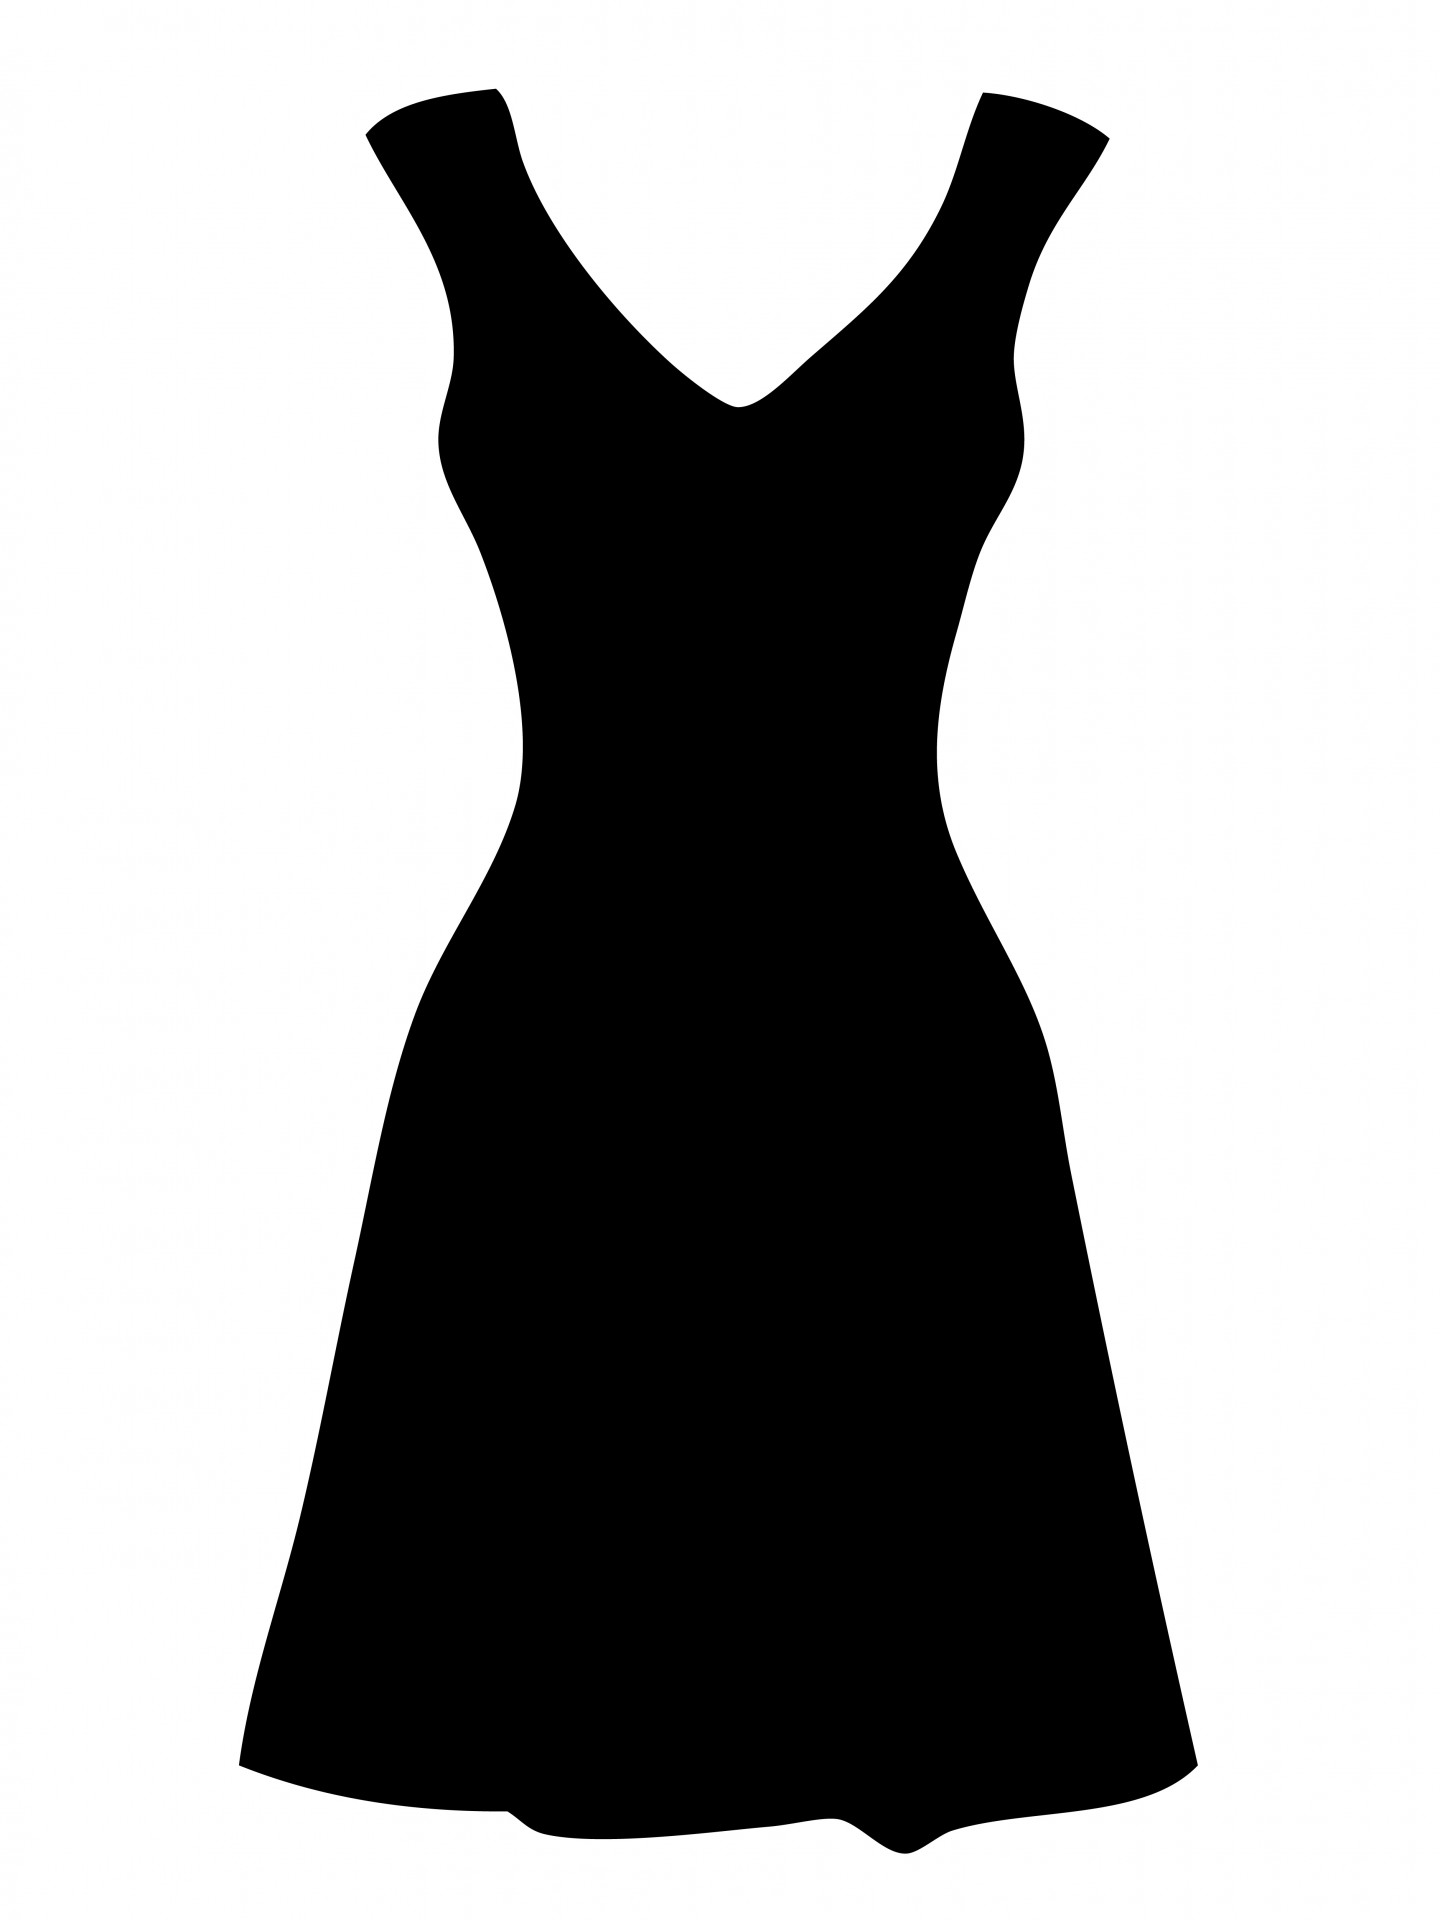 Dress with pearls clipart.